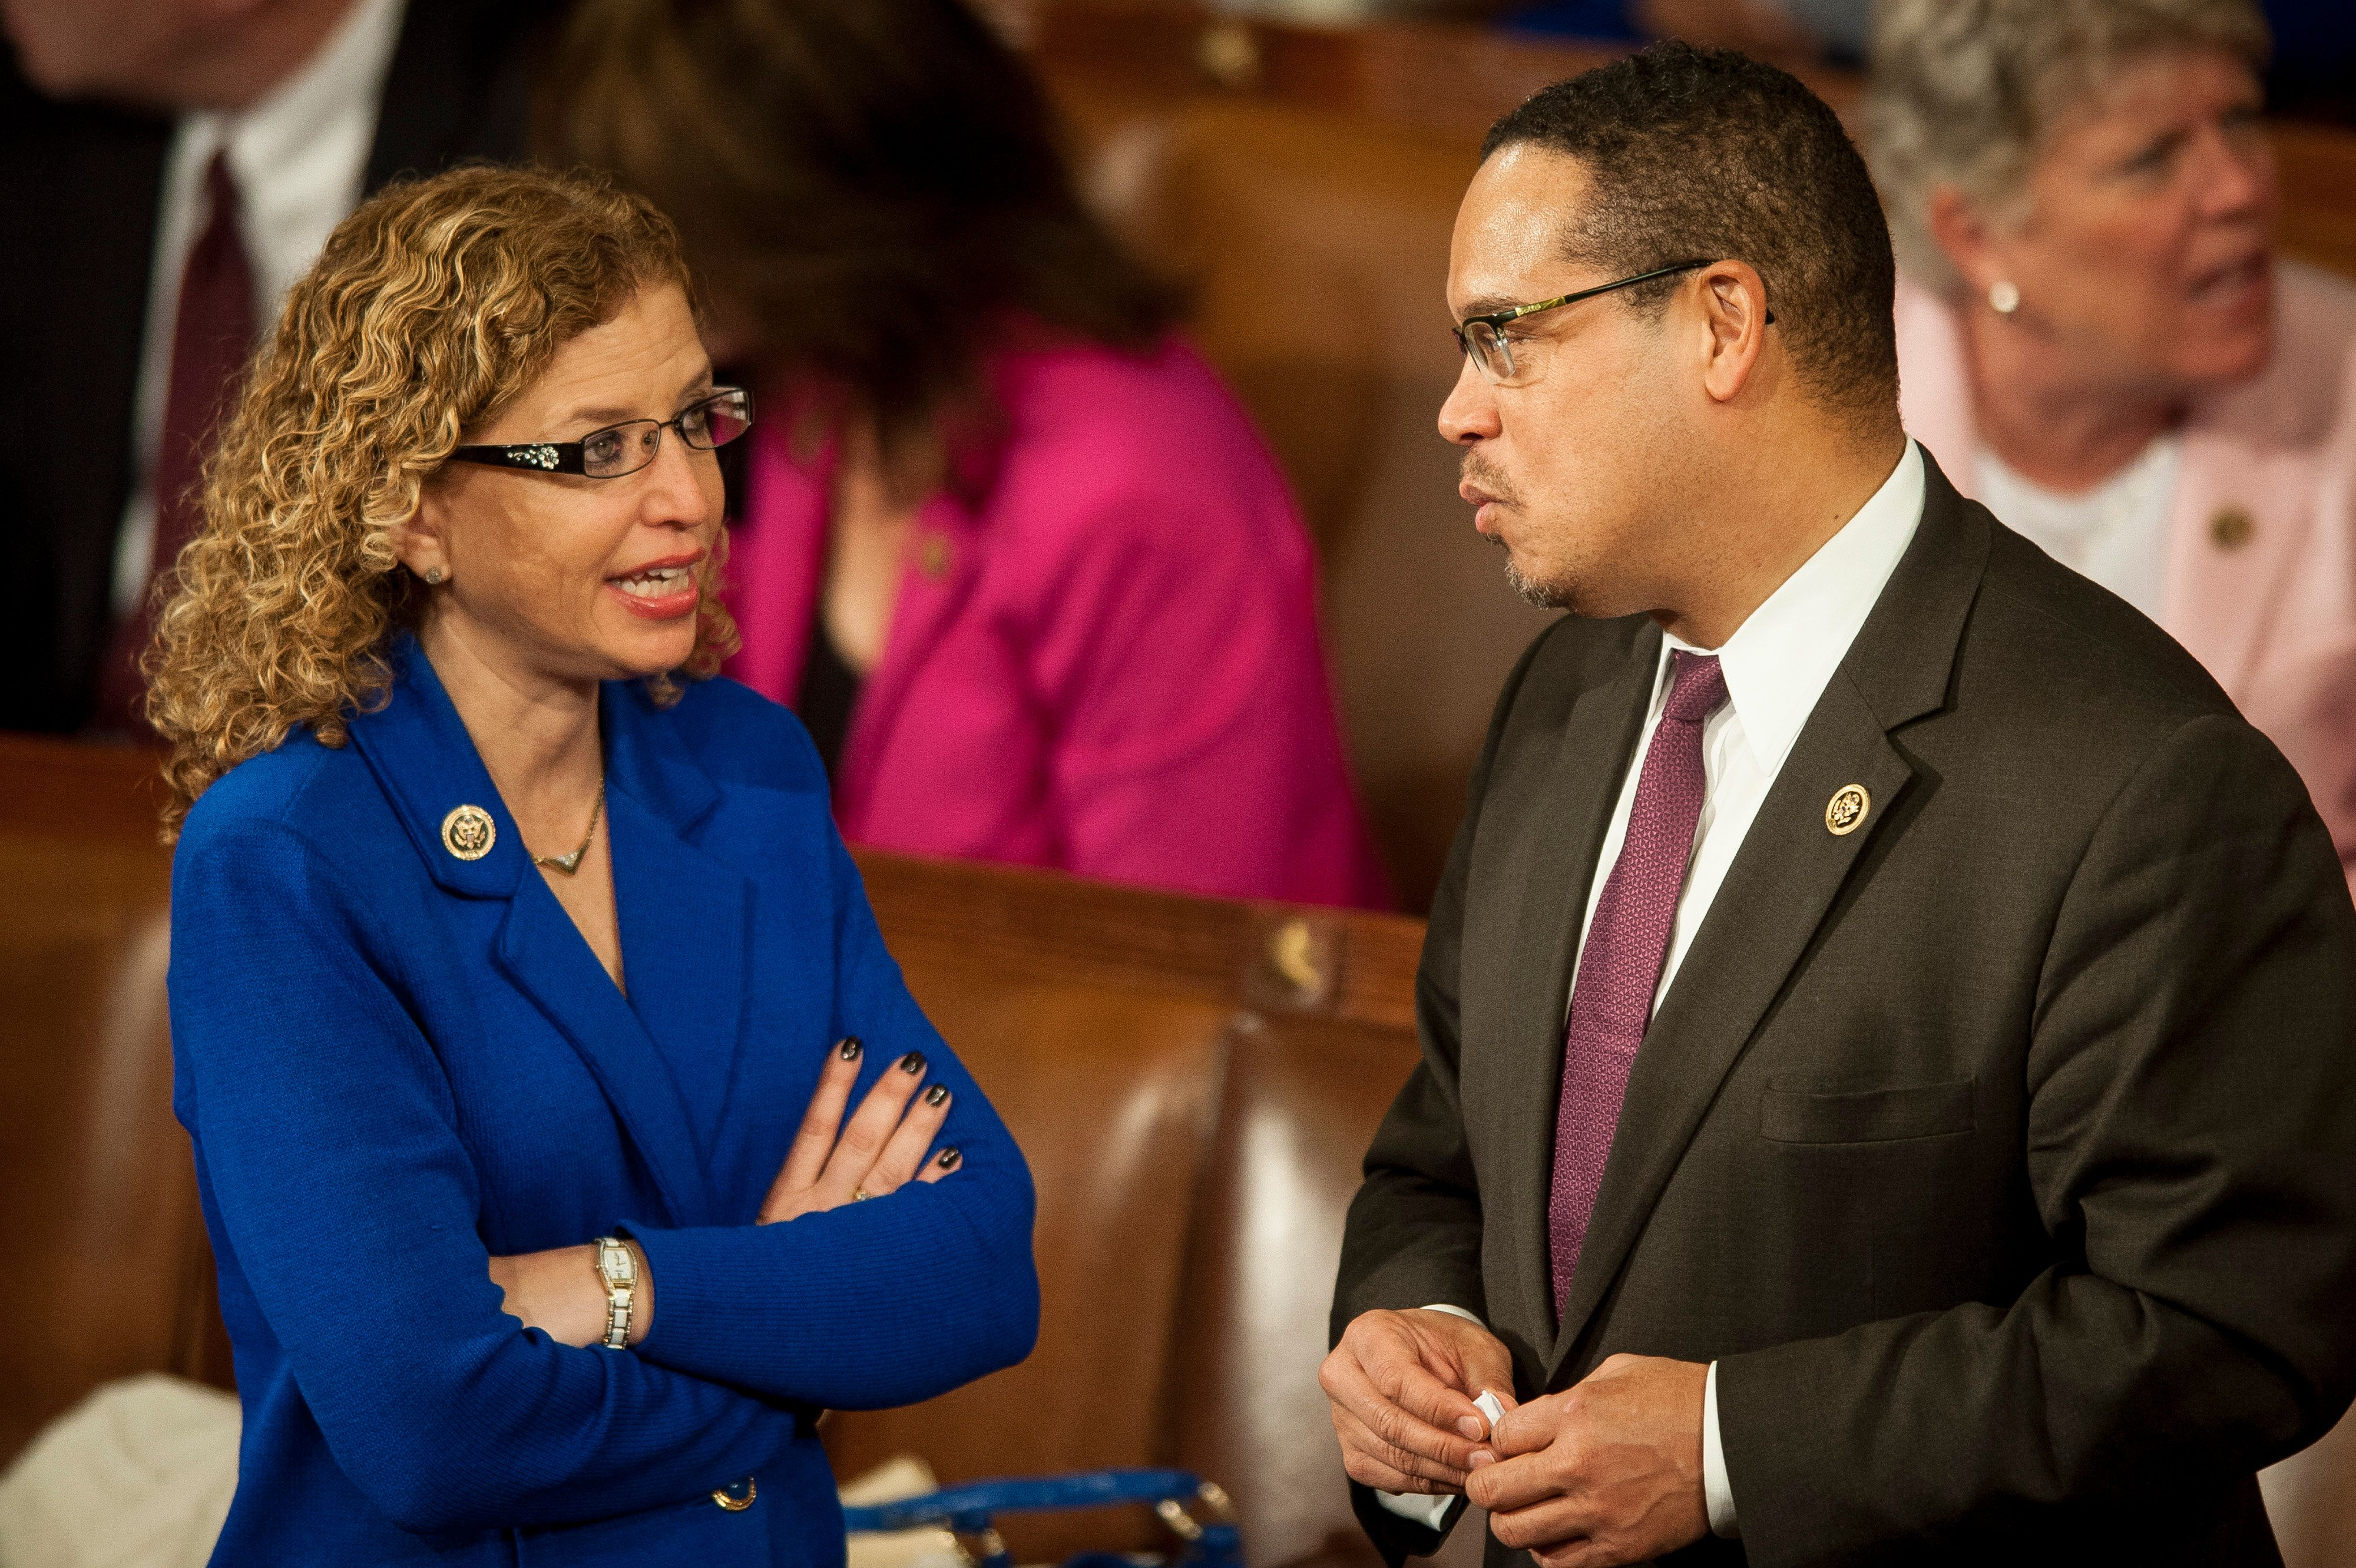 Representative Debbie Wasserman Schultz, a Democrat from Florida, left, talks with Representative Keith Ellison, a Democrat from Minnesota, before U.S. President Barack Obama delivers the State of the Union address to a joint session of Congress at the Capitol in Washington, D.C., U.S., on Tuesday, Jan. 20, 2015. Obama declared the U.S. economy healed and said the nation now must begin work to close the gap between the well-off and the wanting. Photographer: Pete Marovich/Bloomberg via Getty Images